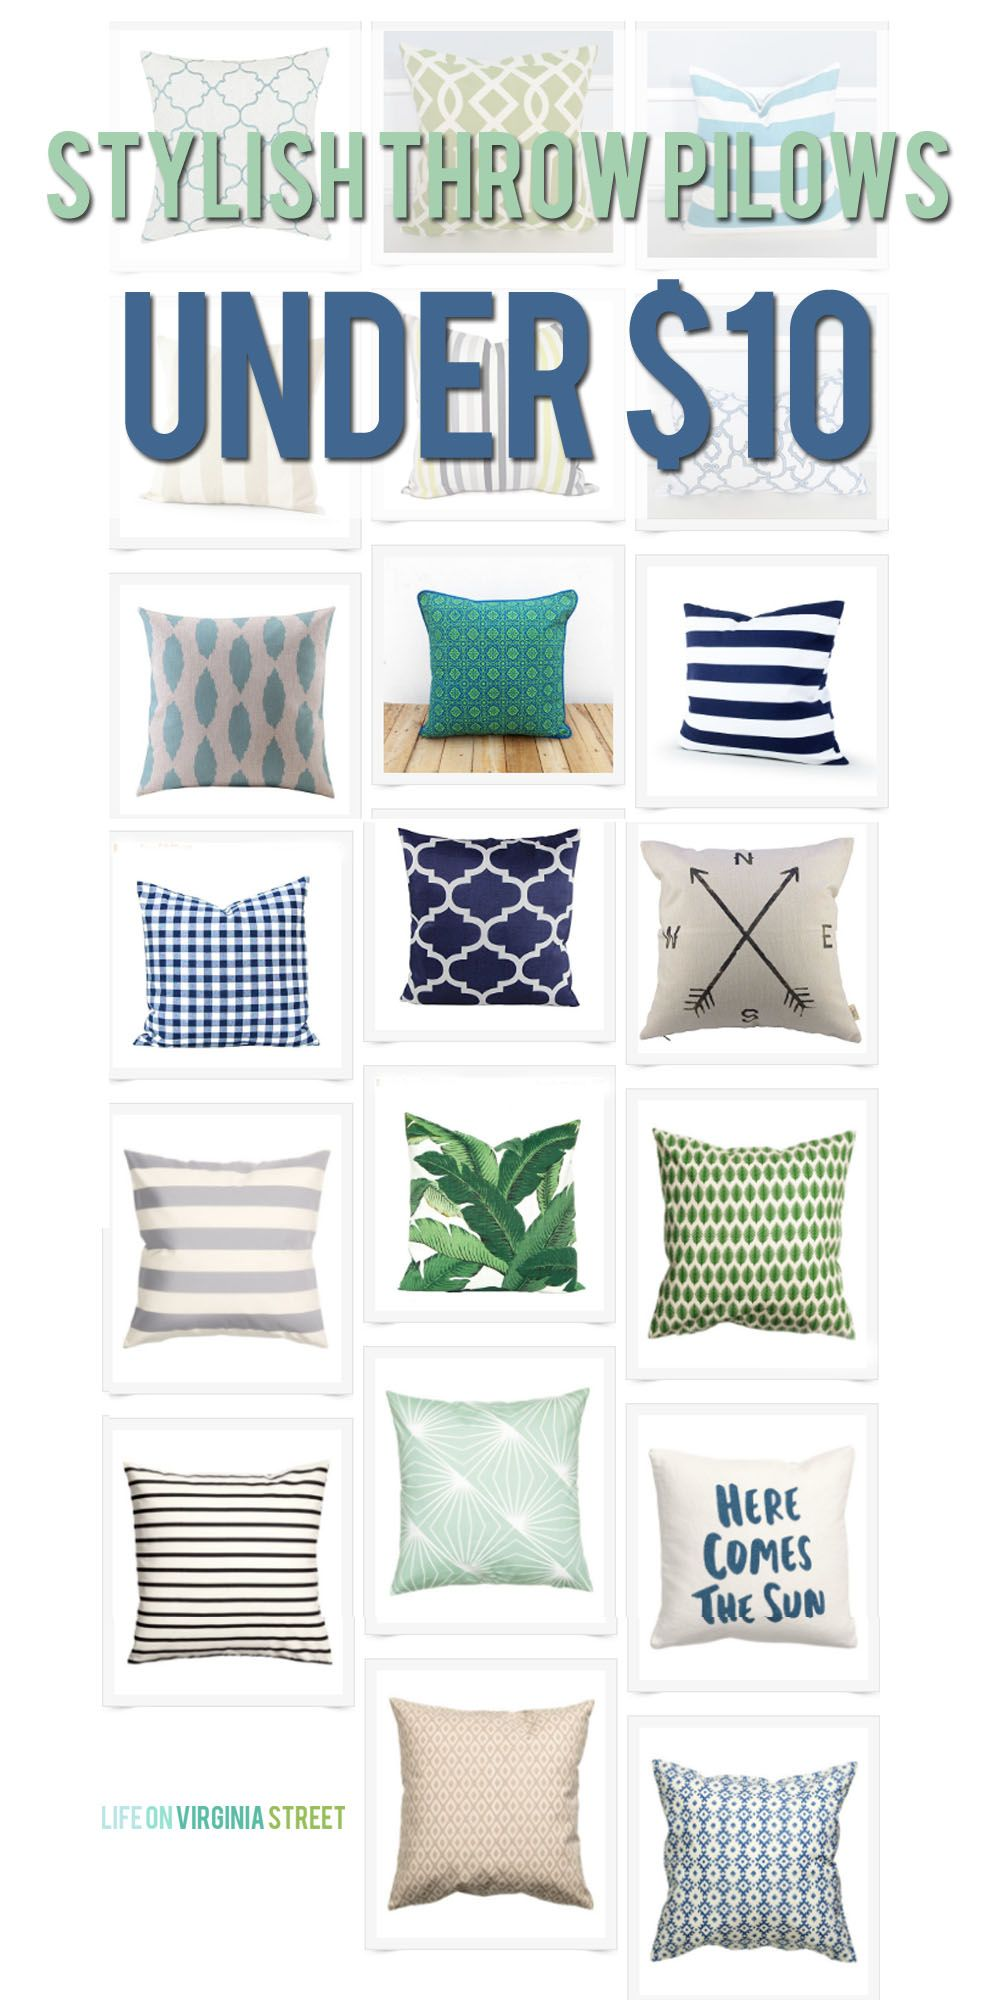 Cheap Decorative Pillows Under $10 Amazing Stylish Throw Pillows For Under $10  Throw Pillows Virginia And Decorating Inspiration